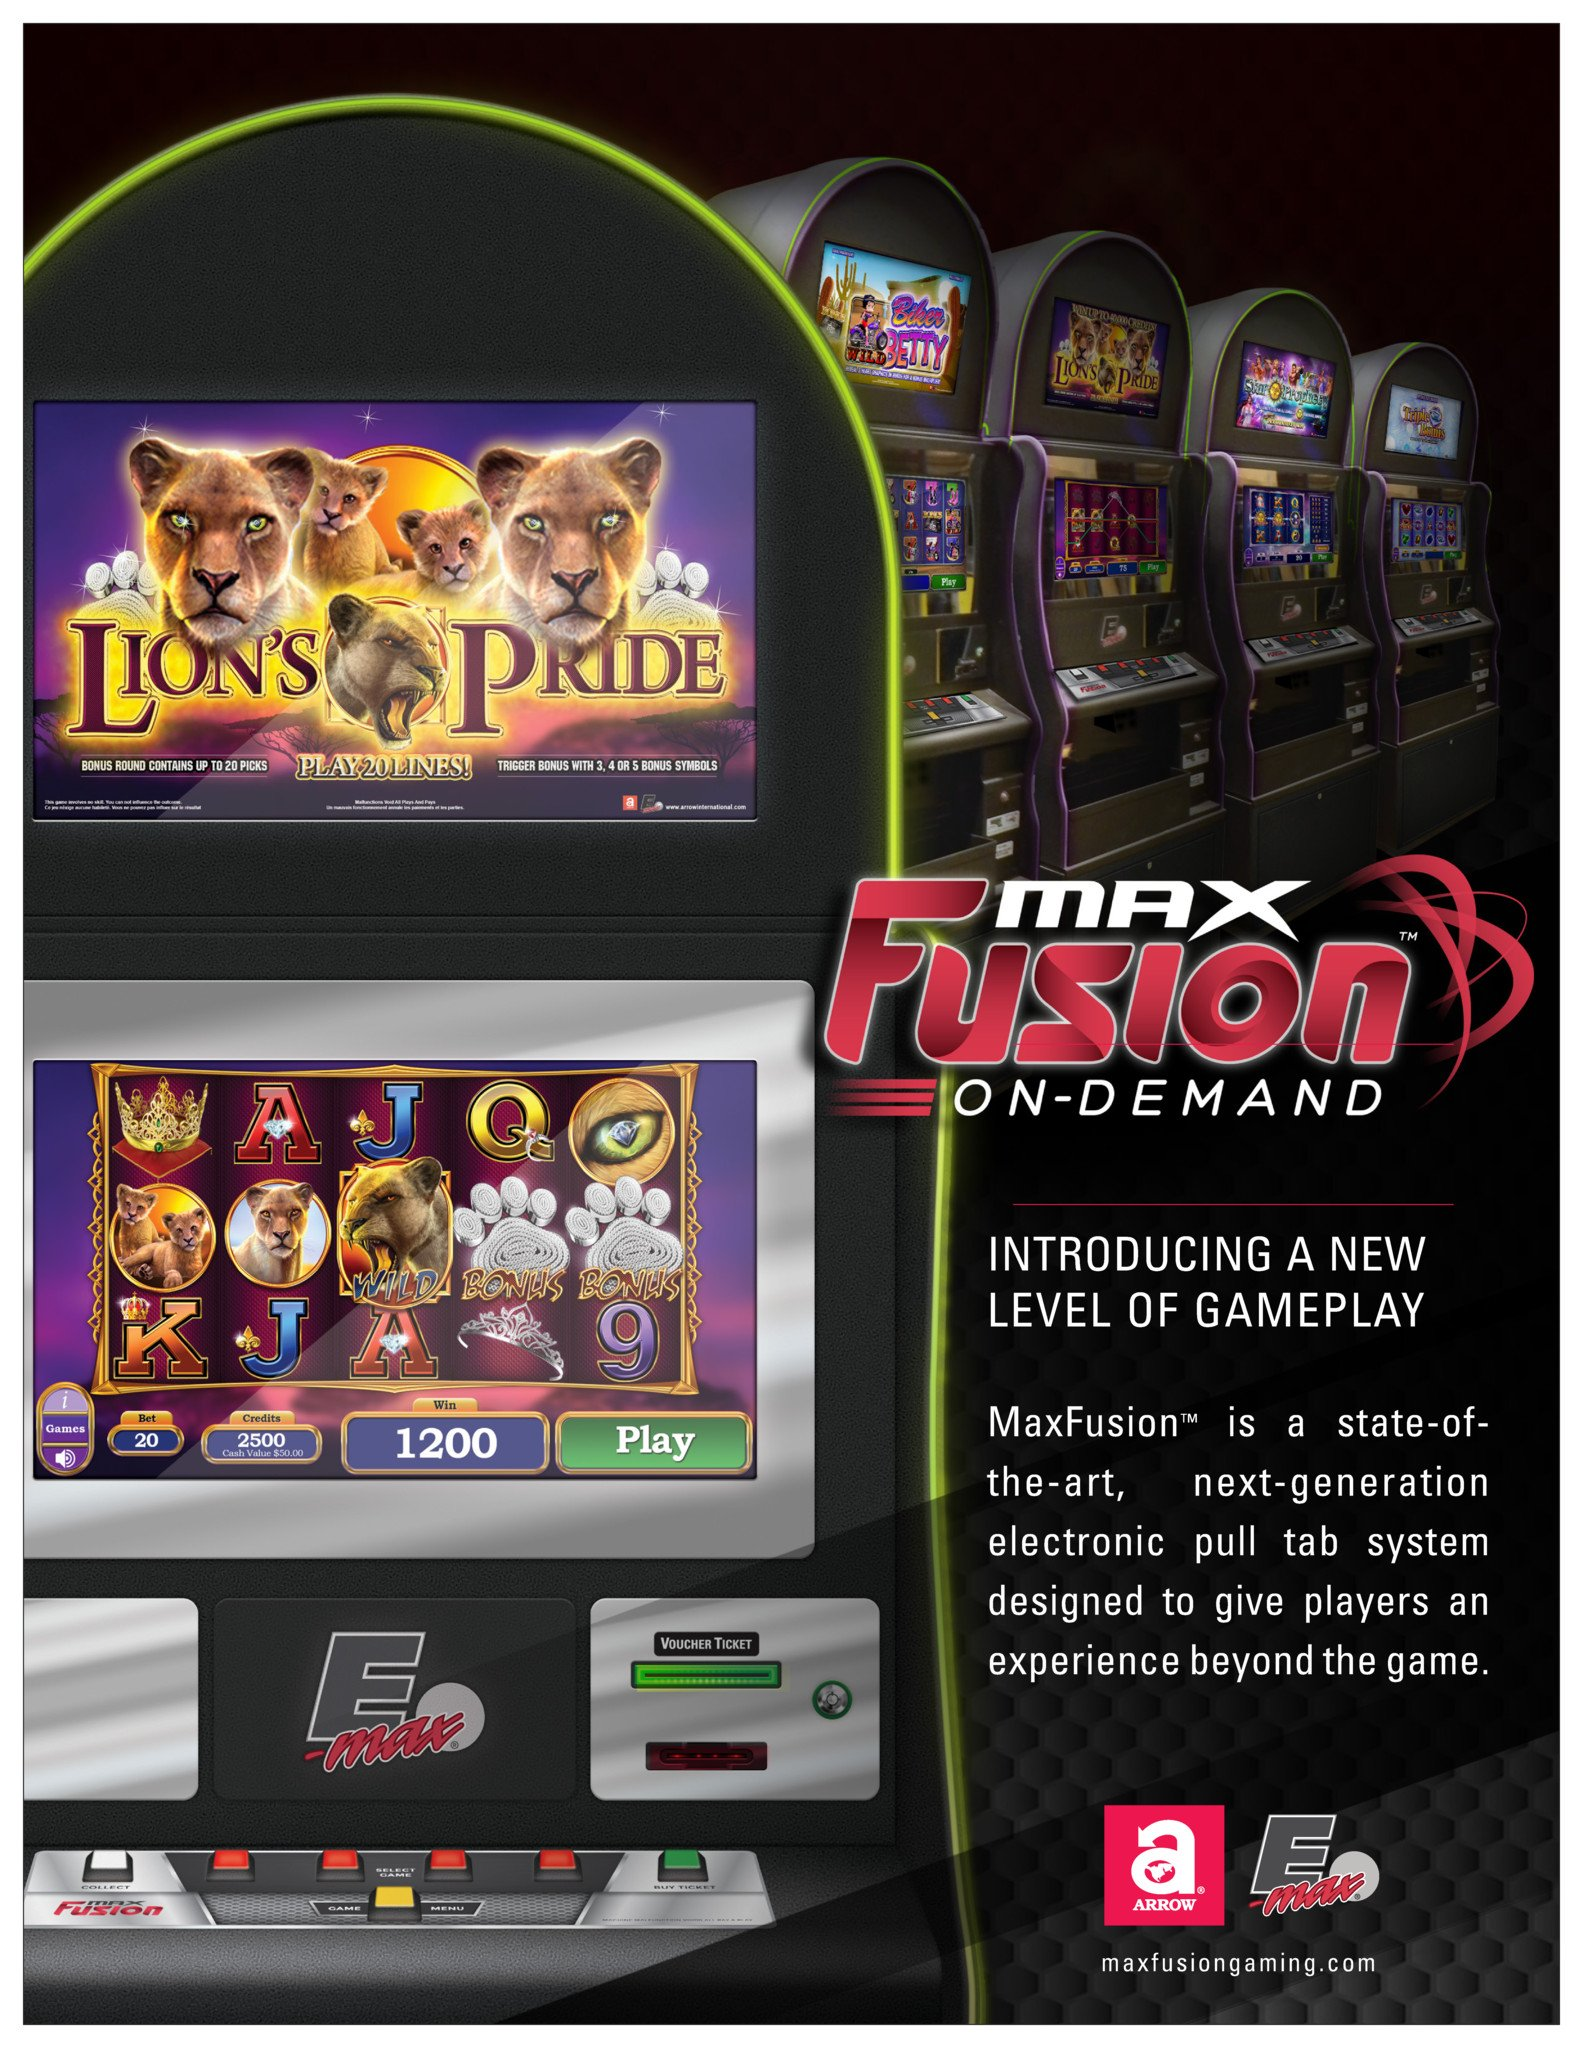 MaxFusion OnDemand Flyer Promotional Materials/Equipment Flyers & Brochures